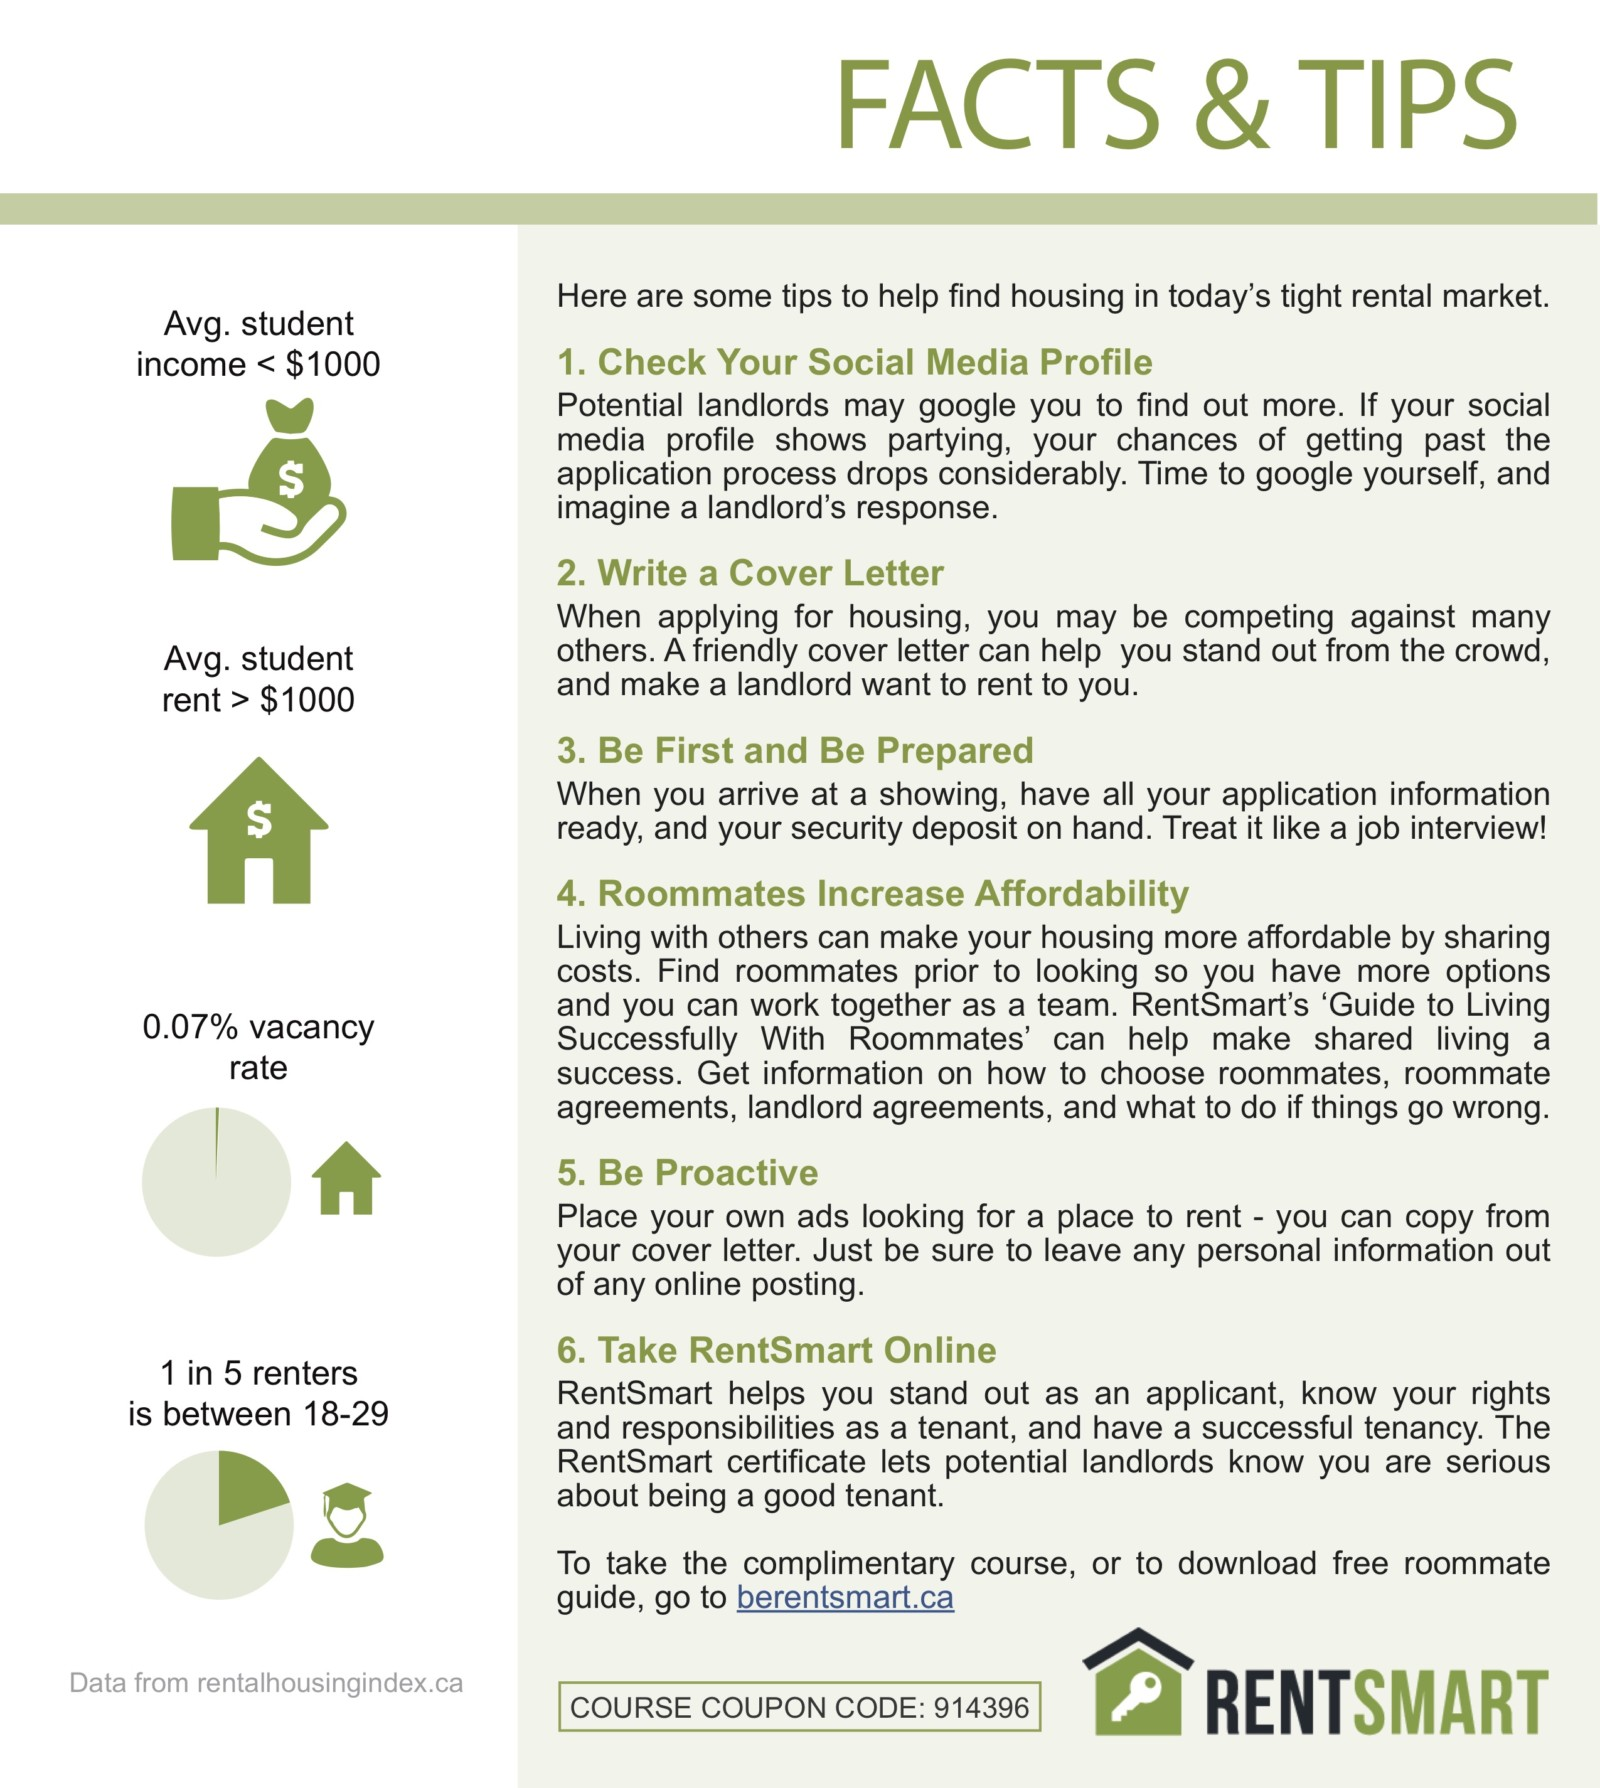 Facts & Tips on Finding Housing